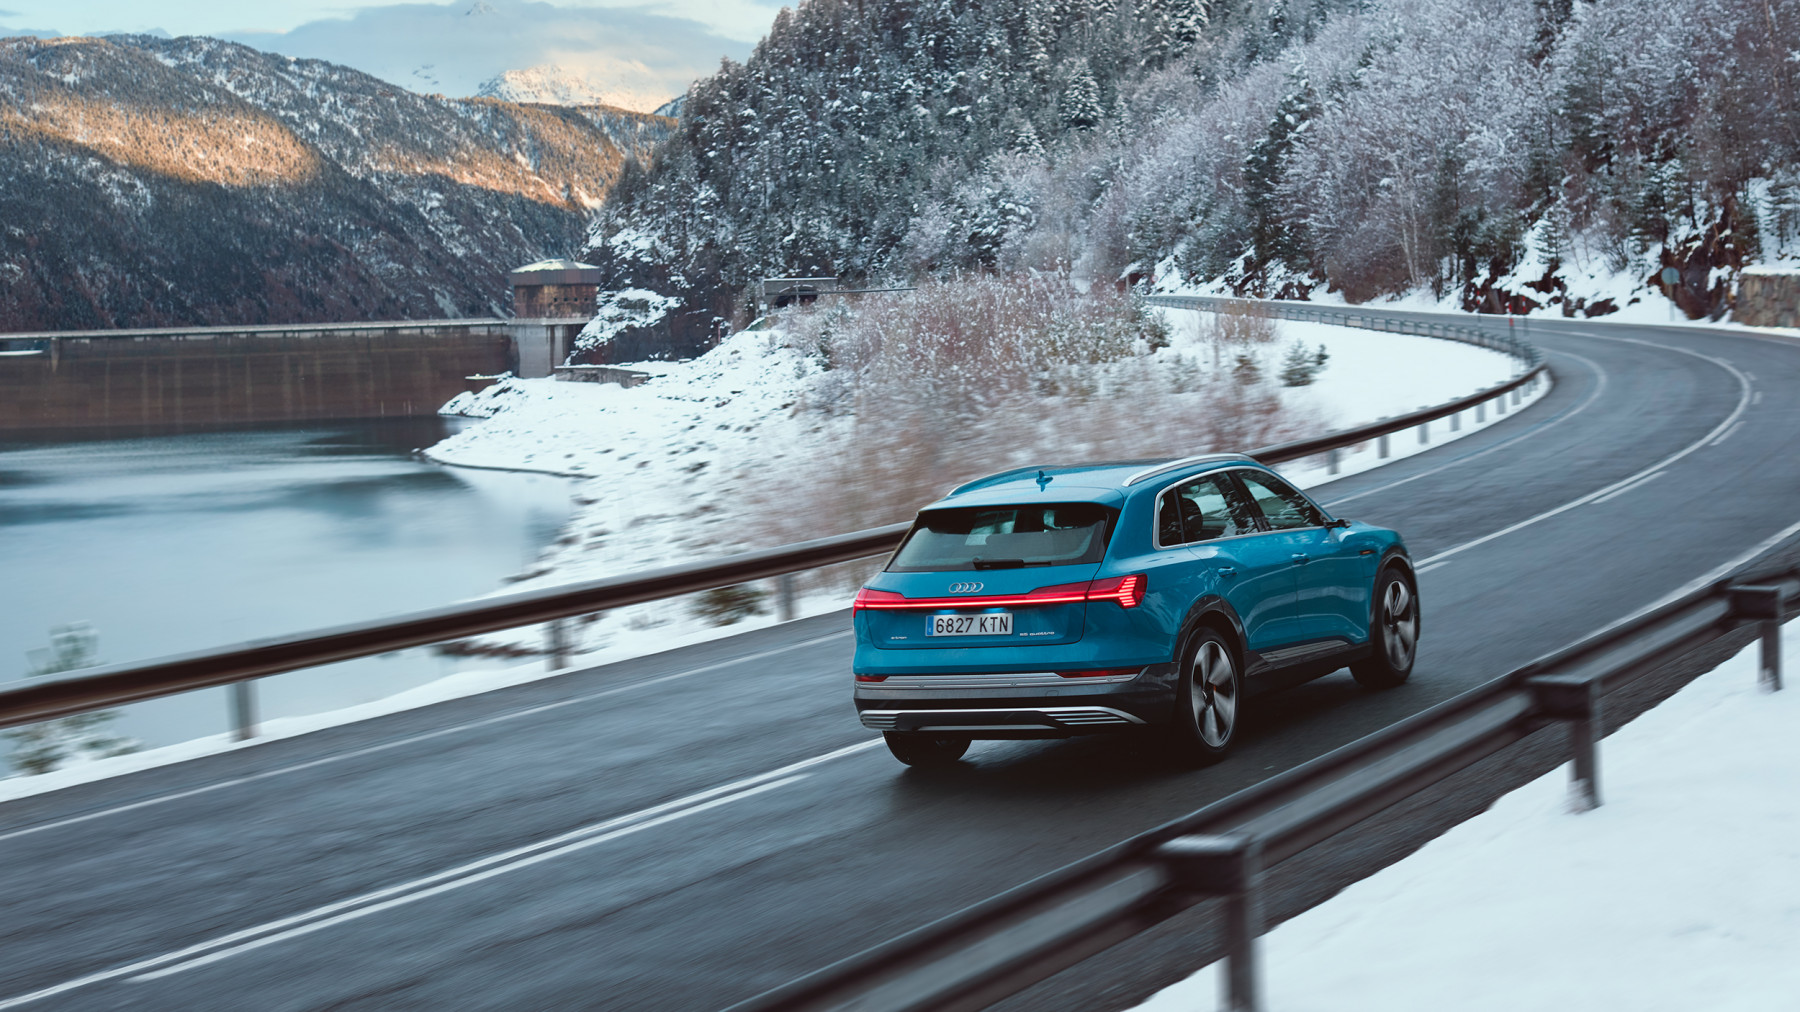 Audi E-Tron winter Barcelona to Baqueira Beret spread 6